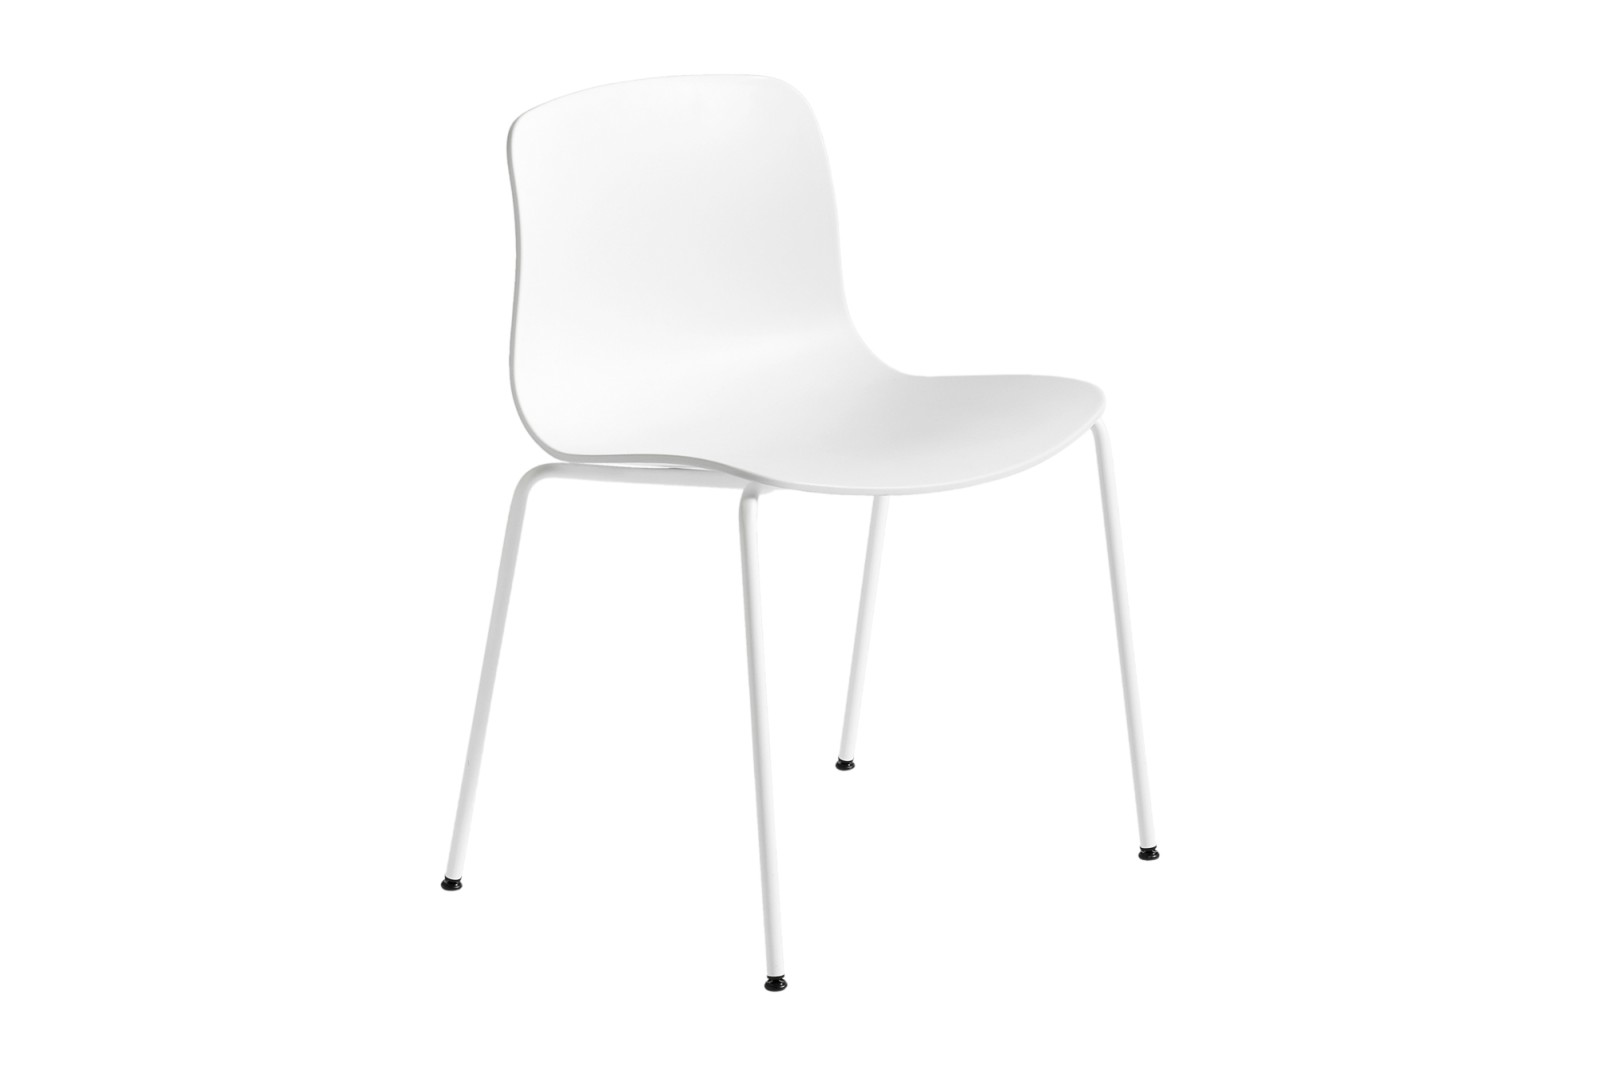 About A Chair AAC16 White, White Powder Coated Steel